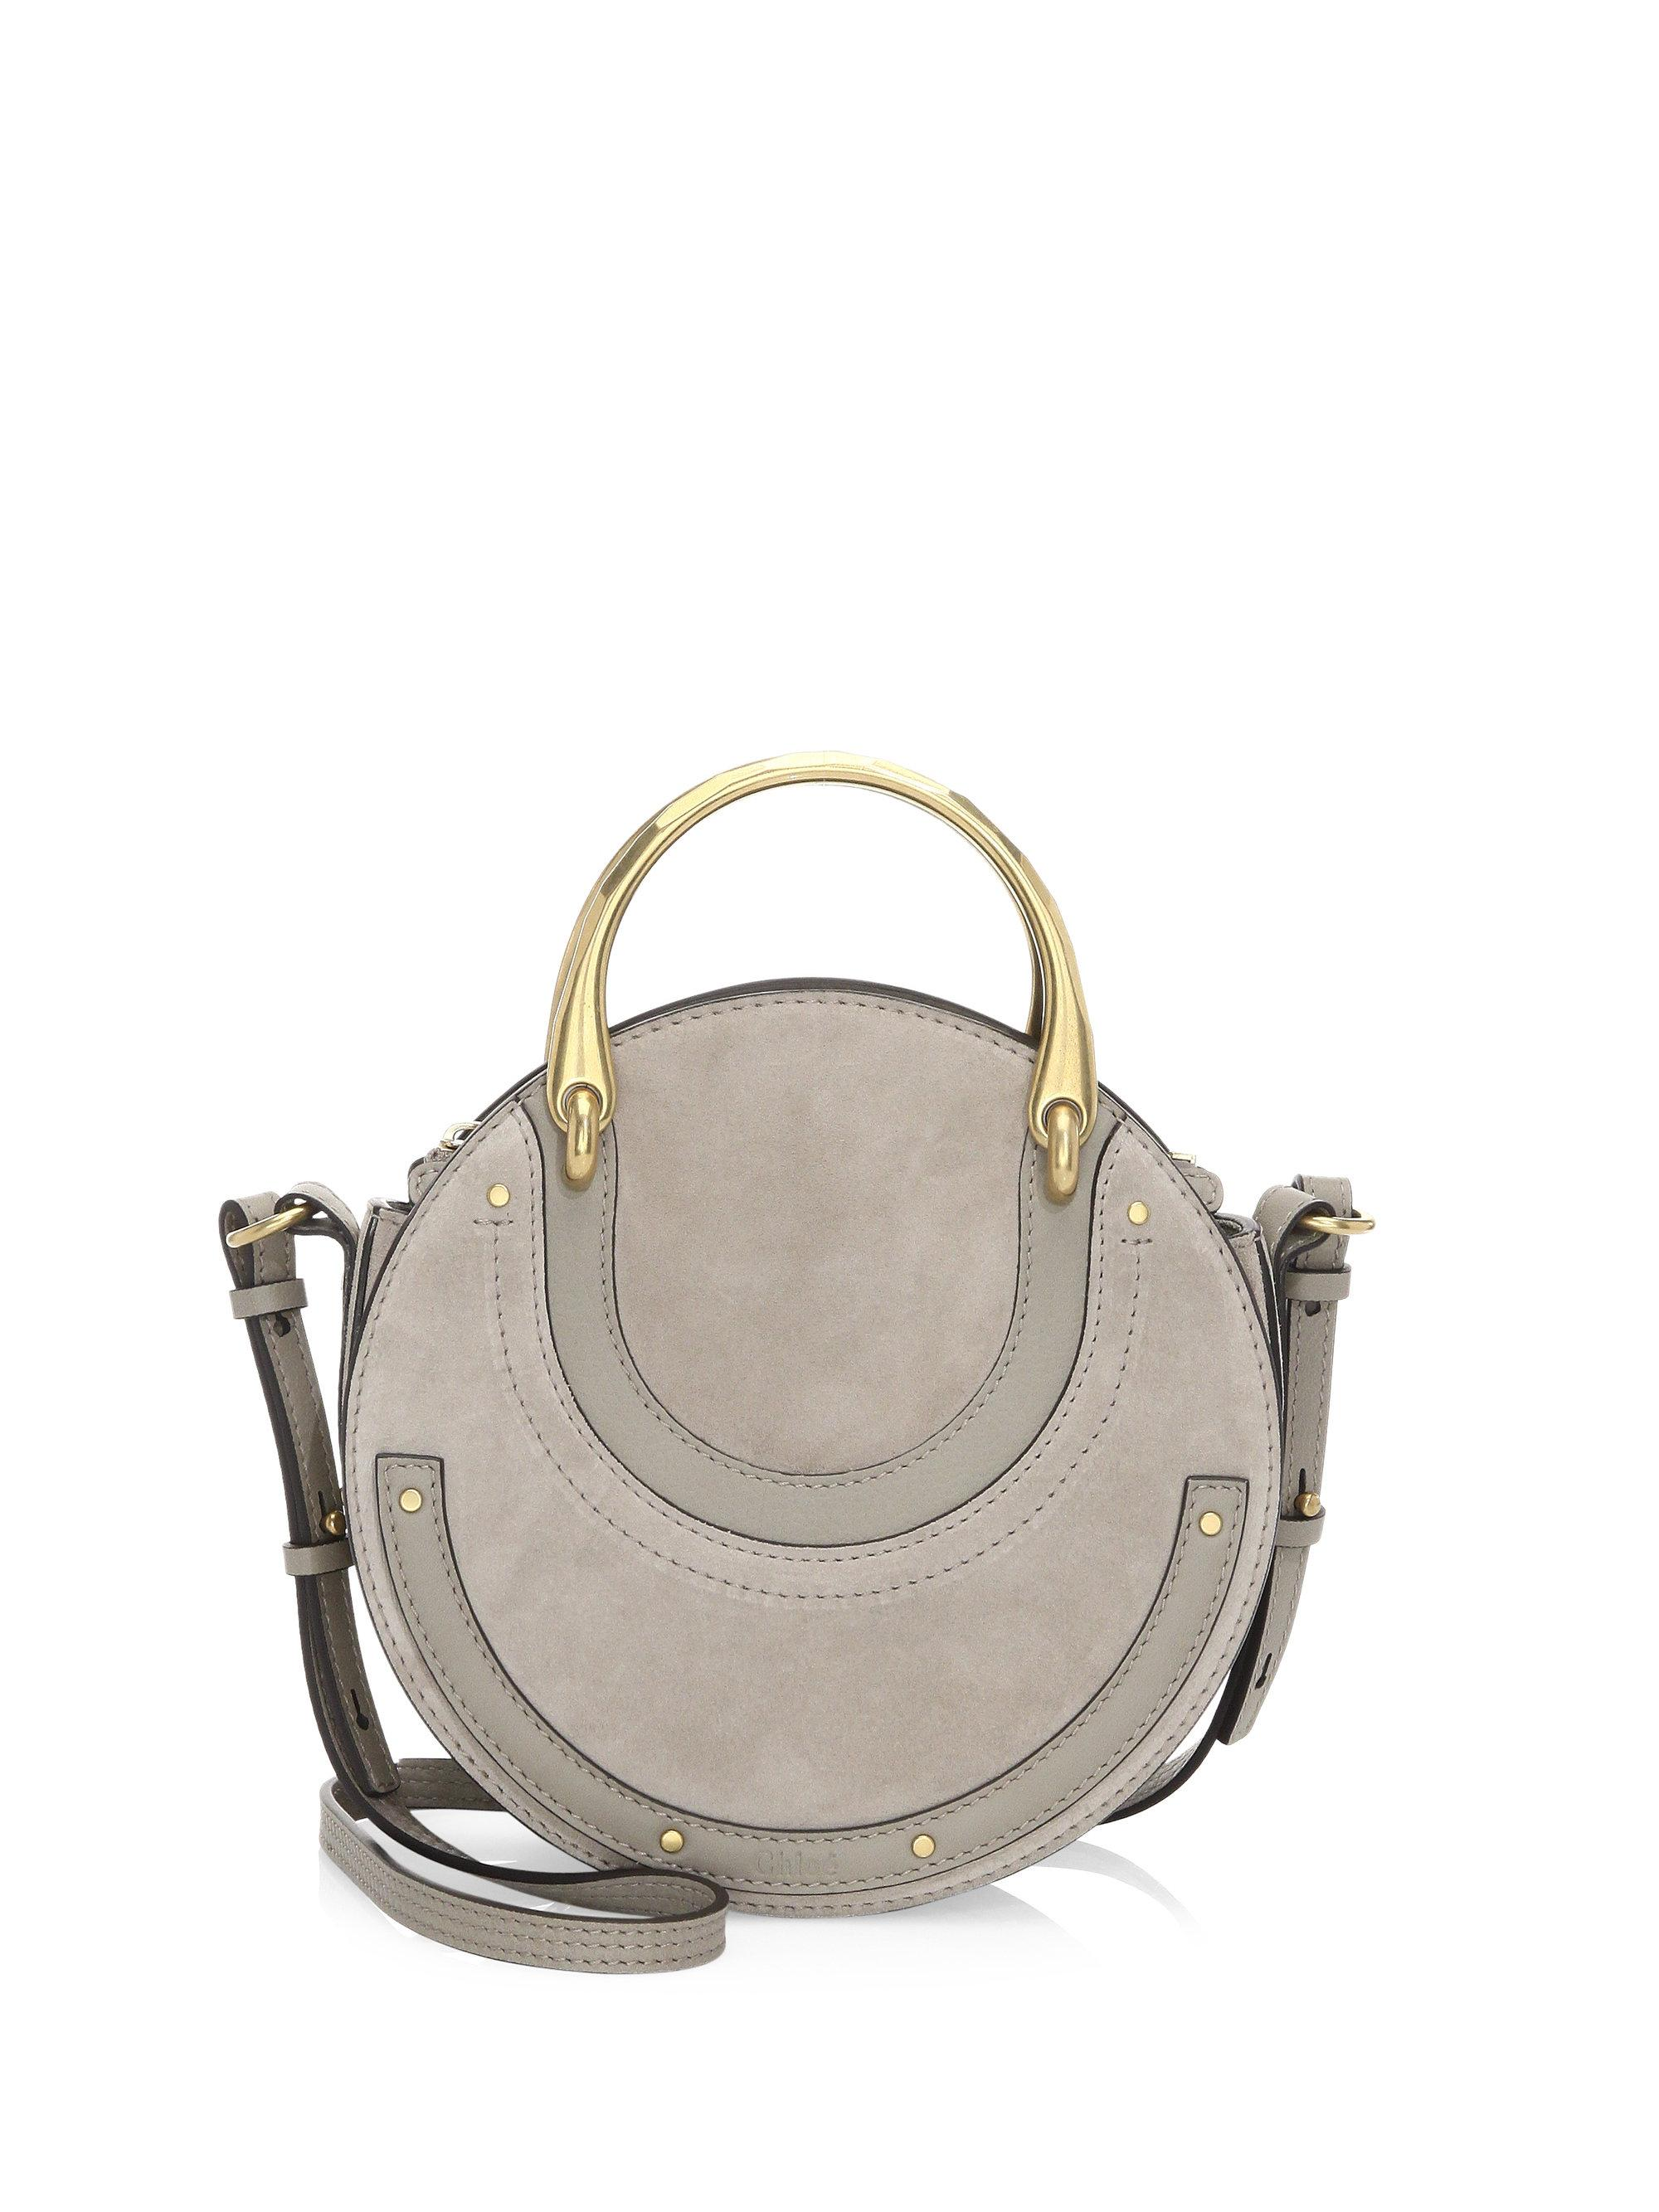 75f1c7ea5c Chloé Gray Small Pixie Suede & Leather Top Handle Bag